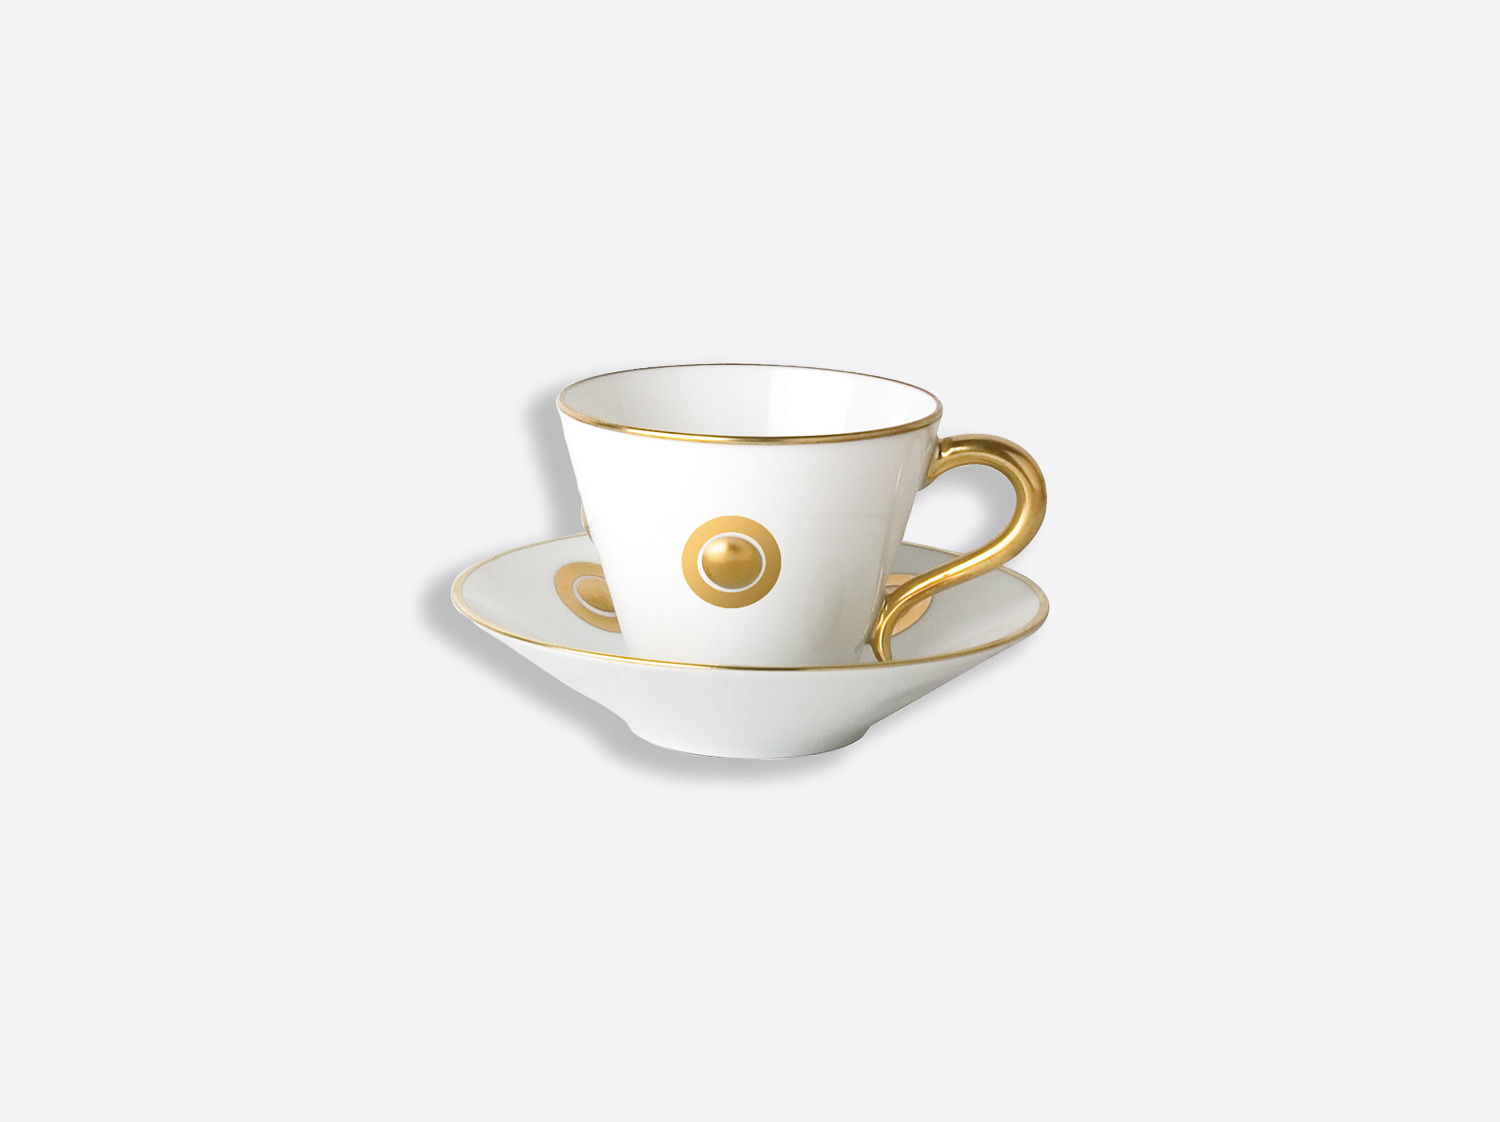 China Espresso cup and saucer 4.4 oz - Per unit of the collection Ithaque or | Bernardaud